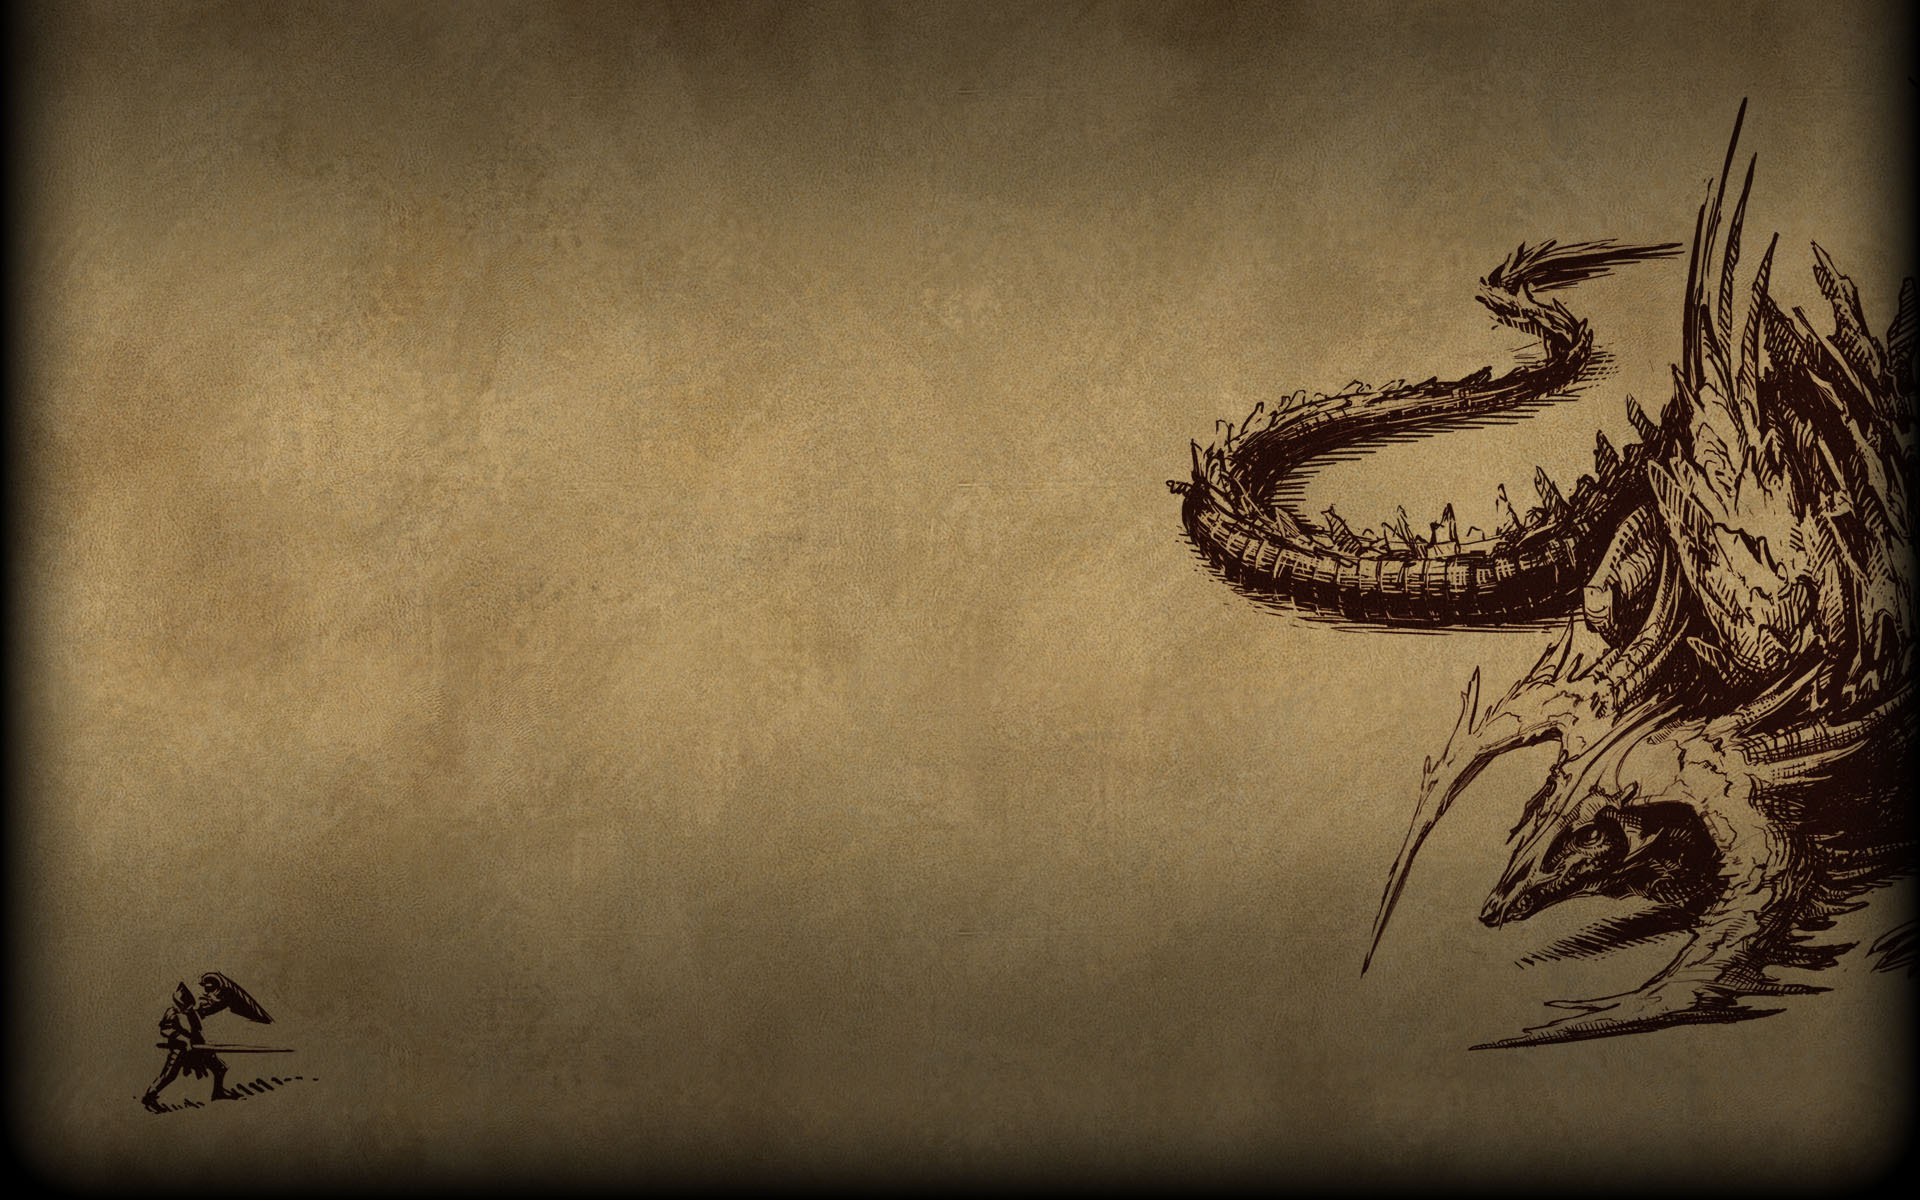 Pillars Of Eternity Wallpaper: Pillars Of Eternity Background Dragon Sketch.jpg